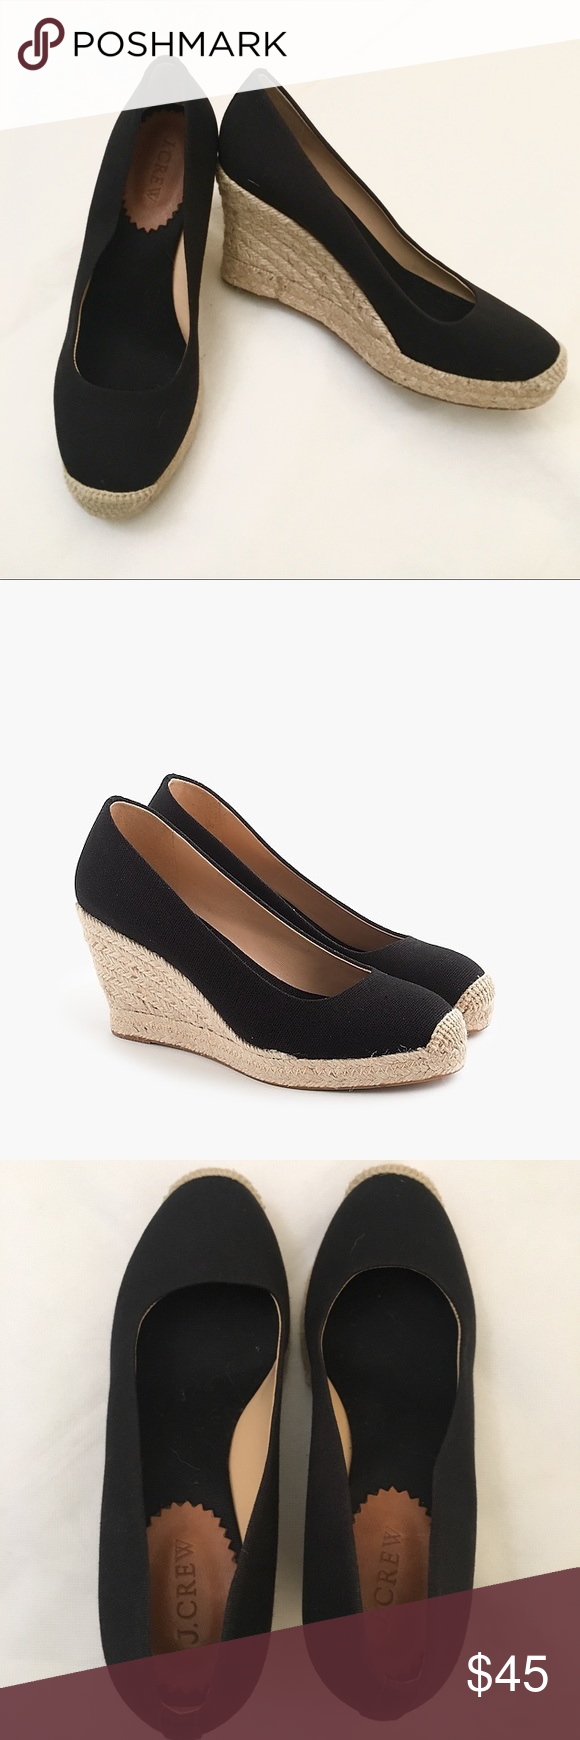 6237f018027 Canvas upper. Leather lining. J. Crew Shoes Espadrilles. J Crew Seville  Espadrille Wedges Navy ...